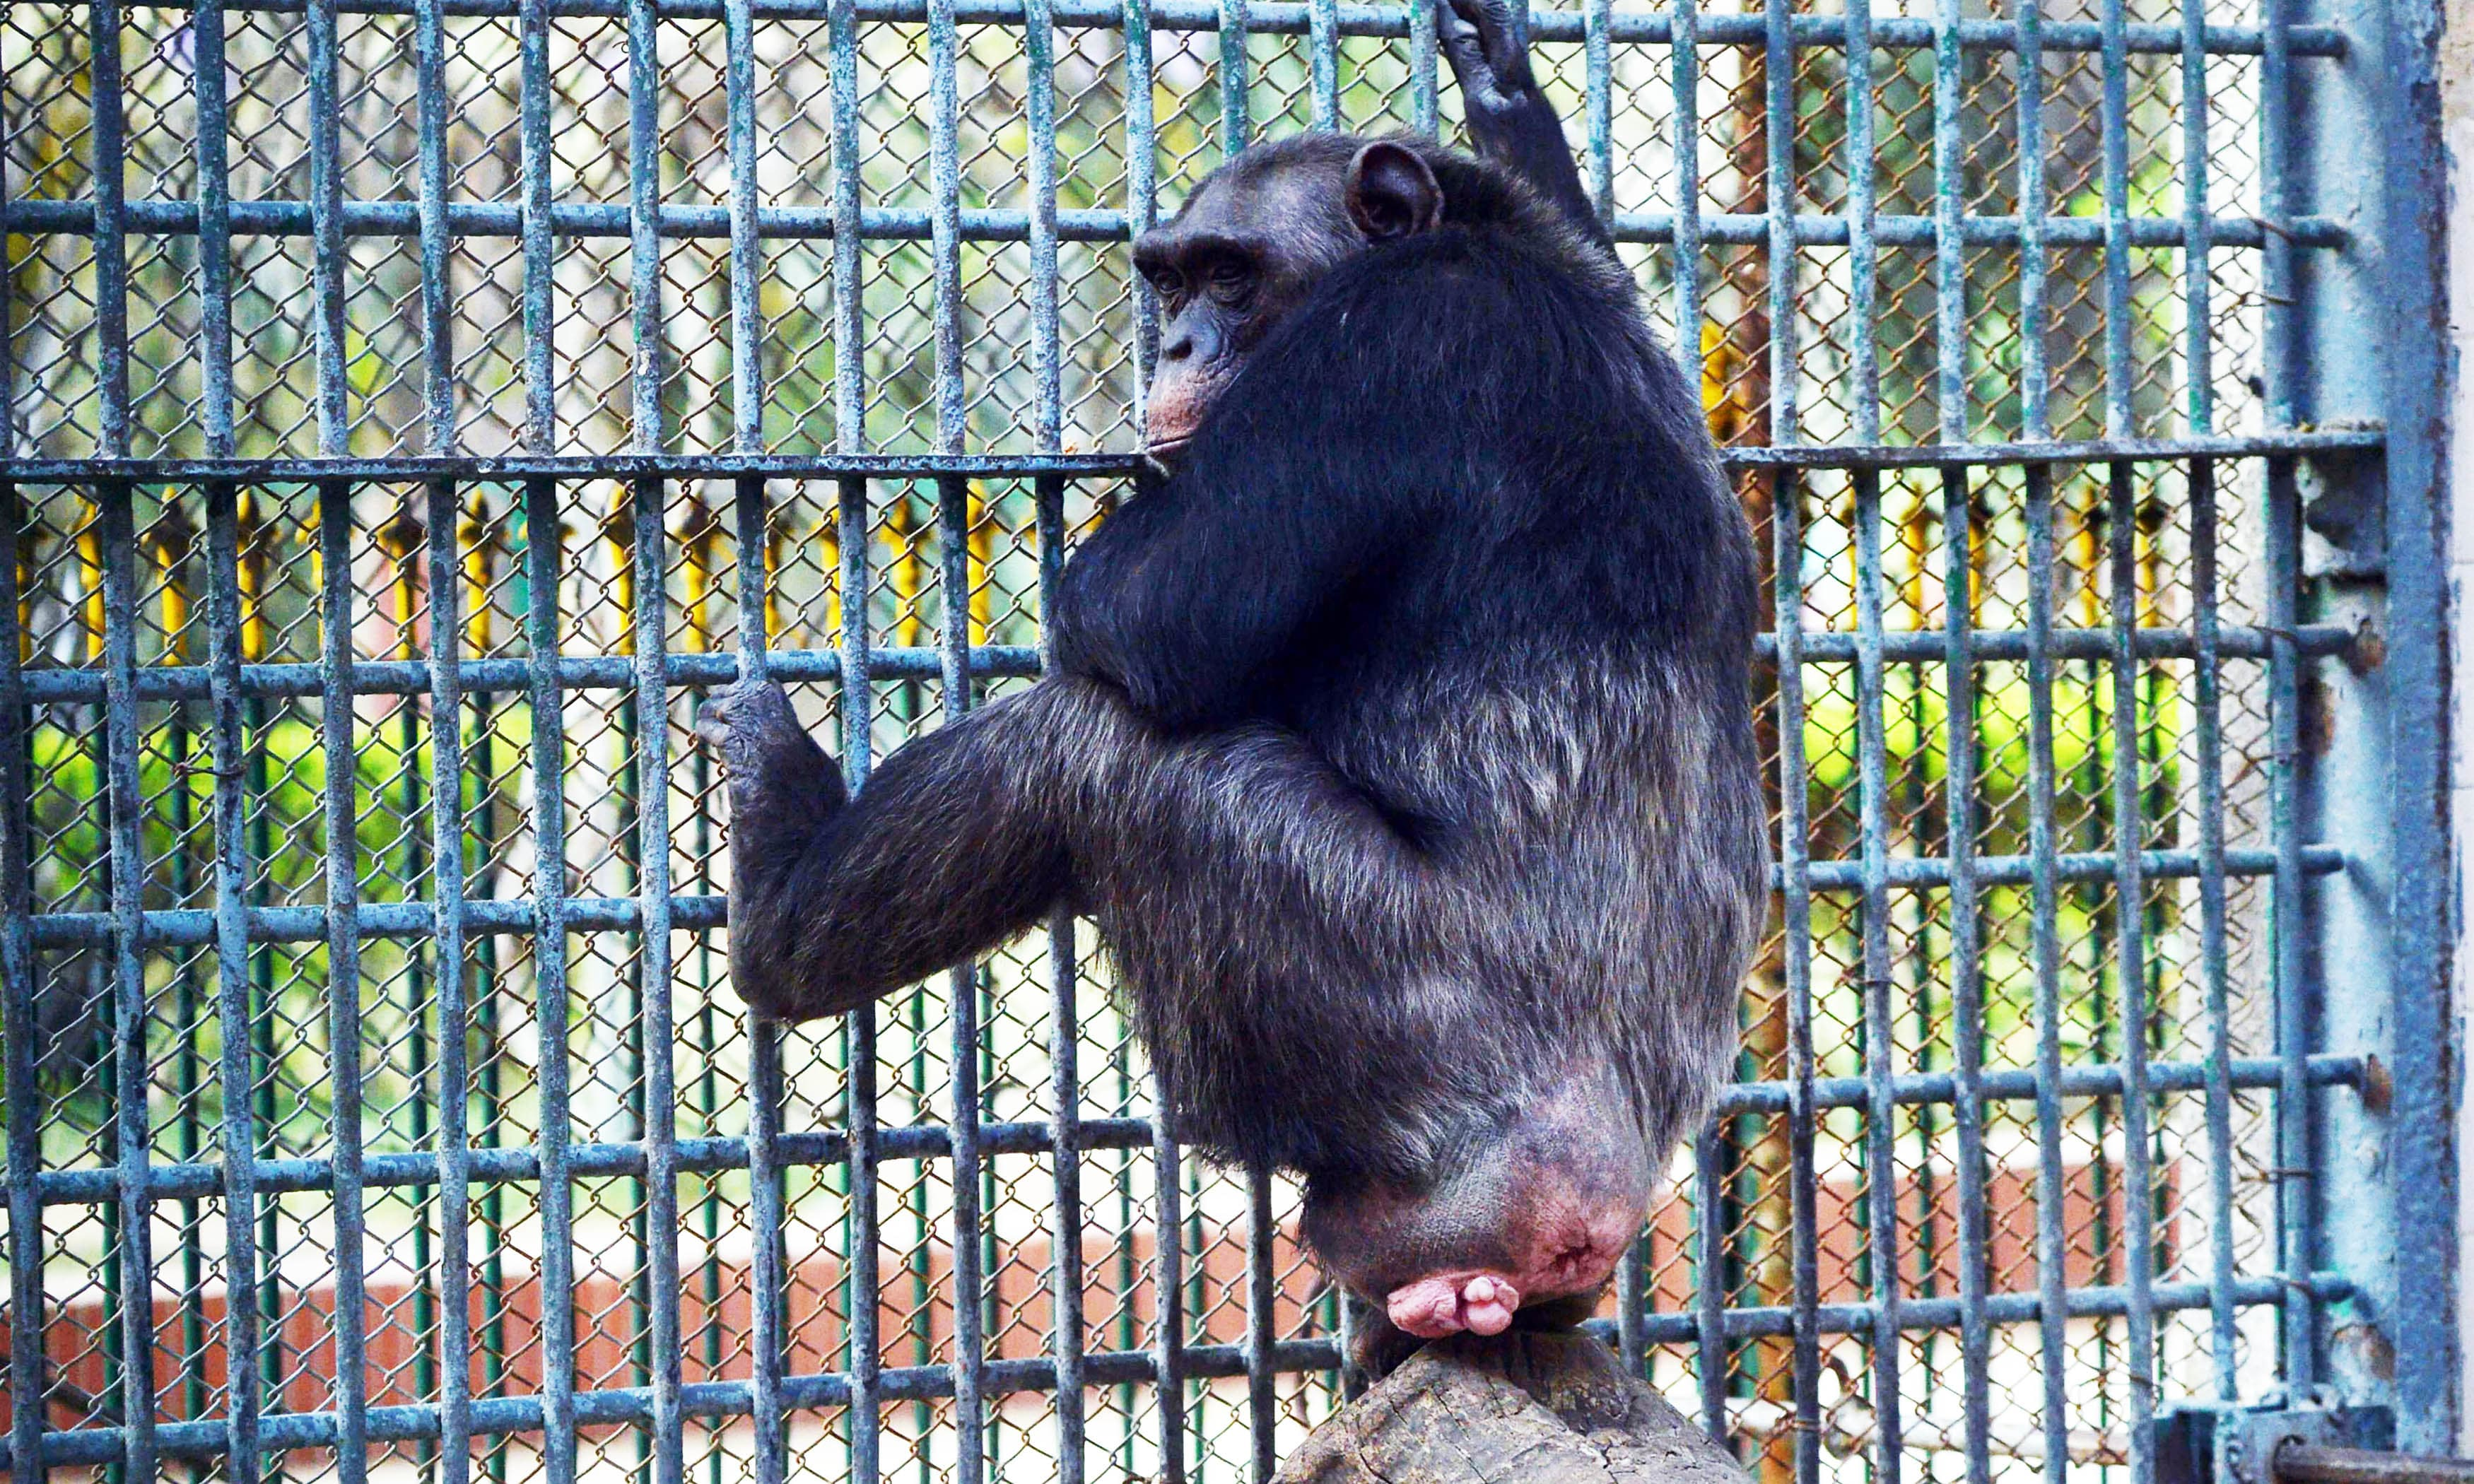 A chimpanzee is pictured in a century-old cage at the Karachi Zoo in Karachi. —AFP